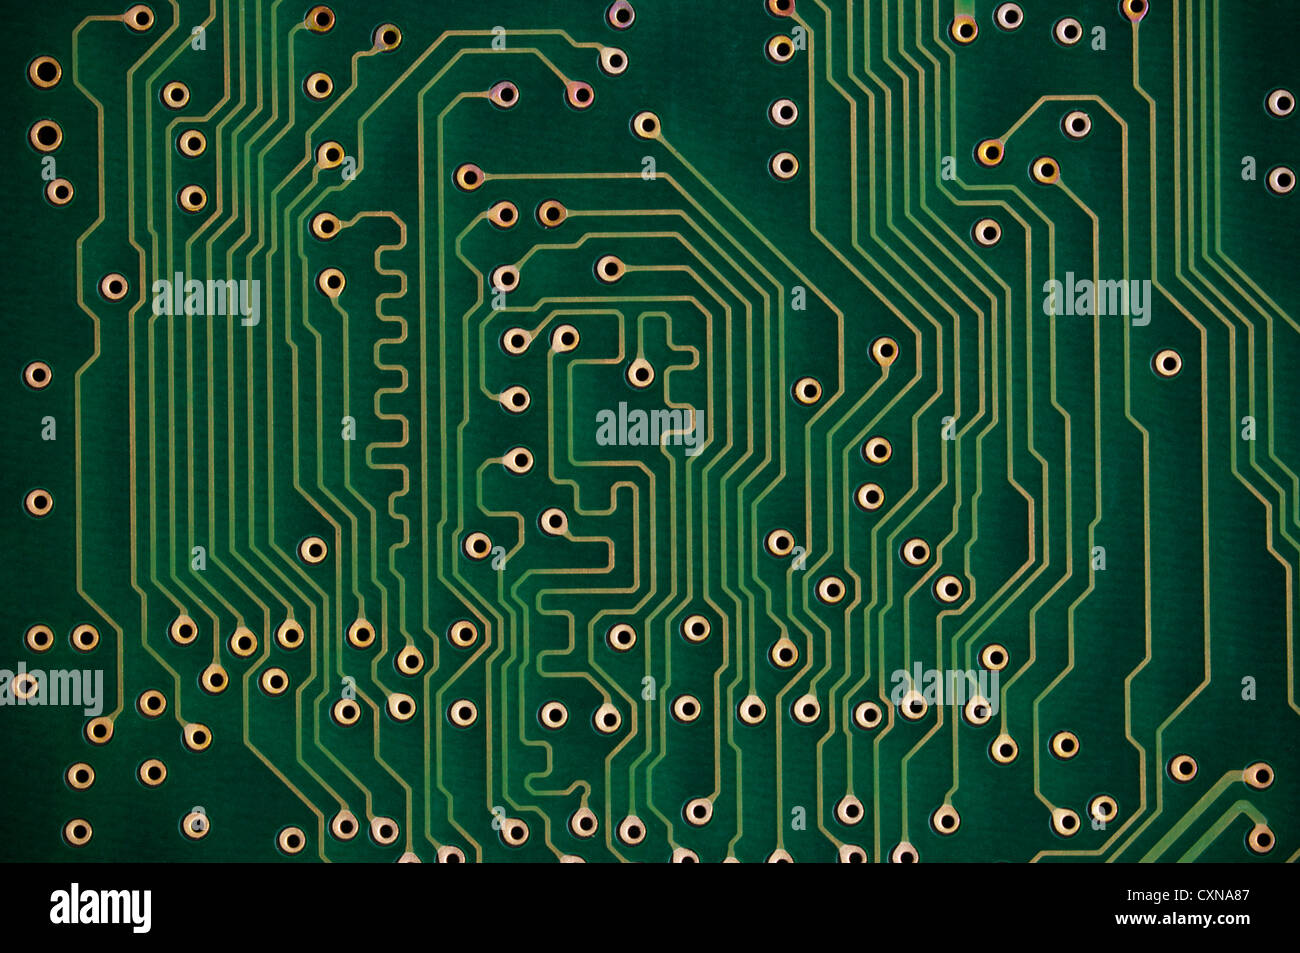 Pcb Design Stock Photos & Pcb Design Stock Images - Alamy